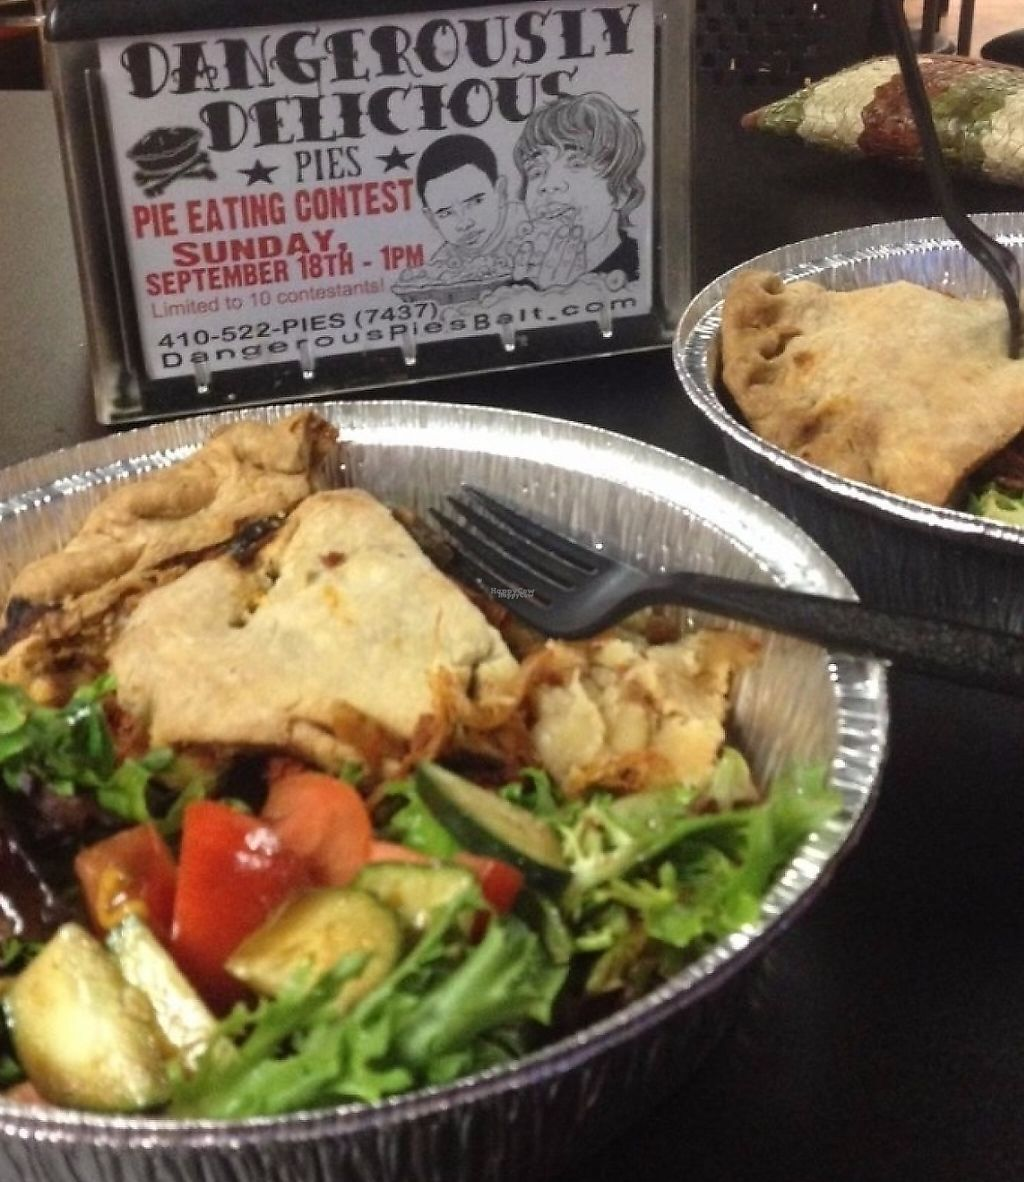 """Photo of Dangerously Delicious Pies  by <a href=""""/members/profile/veggie_htx"""">veggie_htx</a> <br/>Ratatouille pie with side salad <br/> September 13, 2016  - <a href='/contact/abuse/image/80074/201676'>Report</a>"""